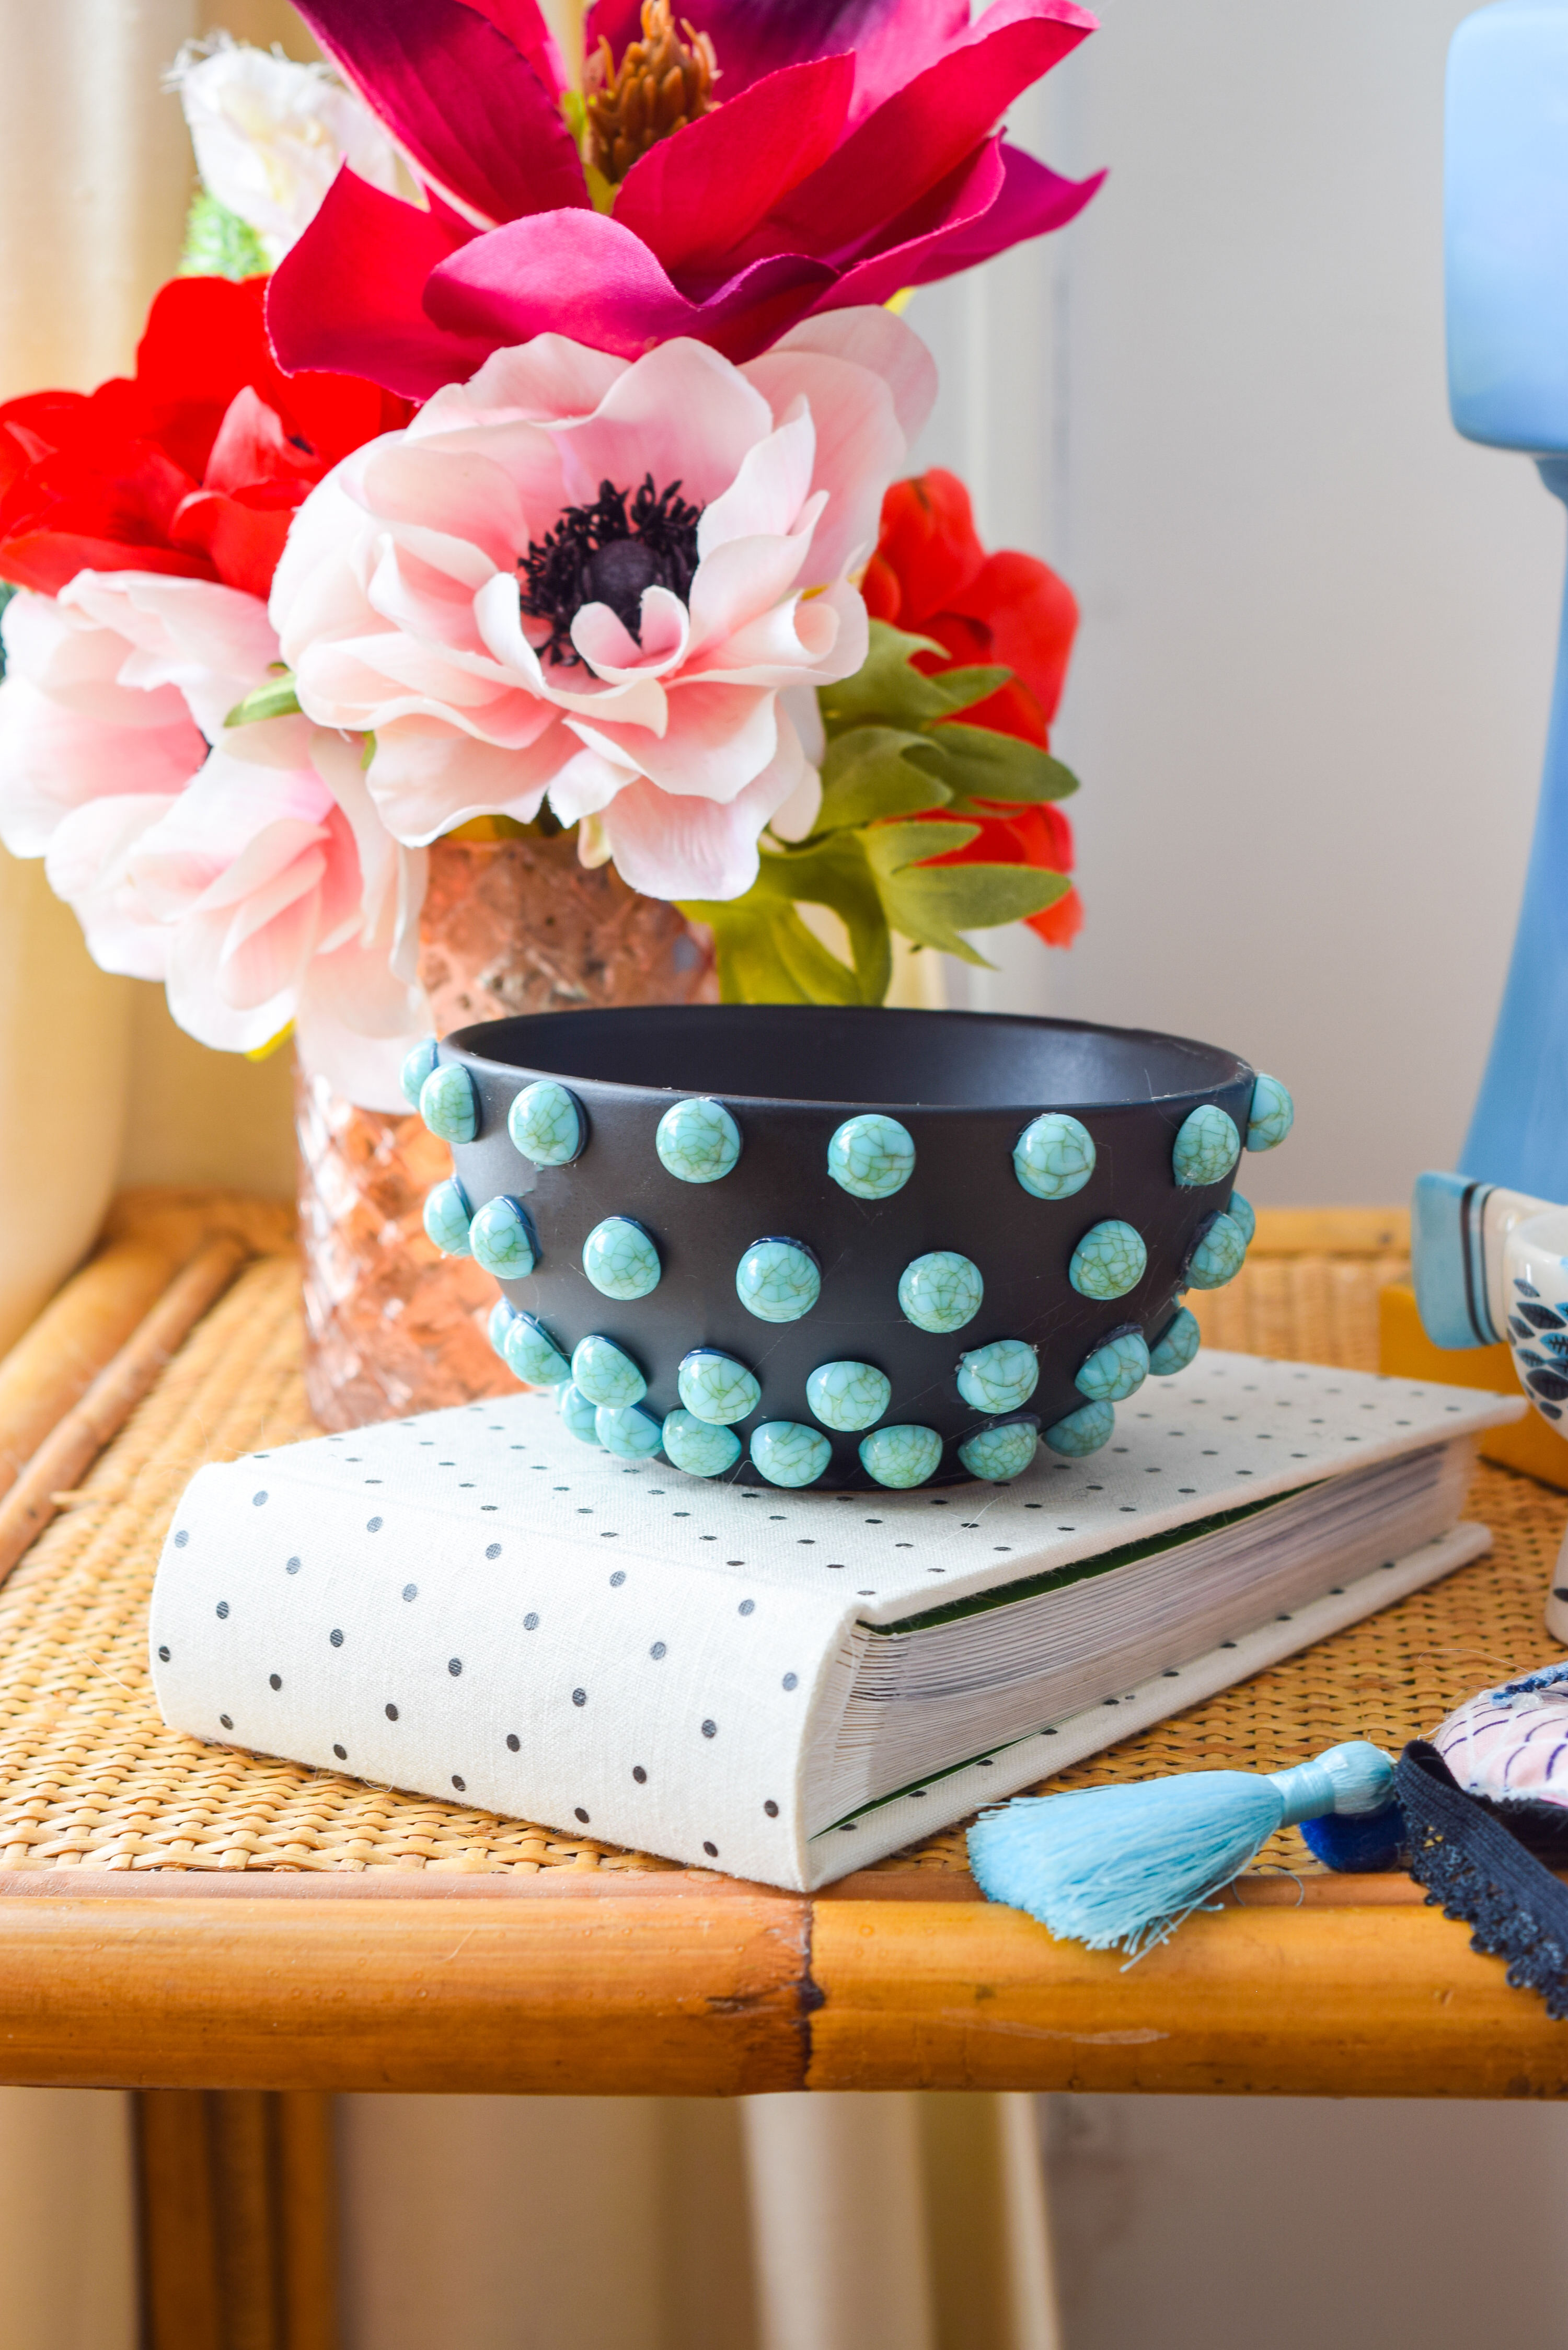 Got 10 mins and some killer beads? Check out my DIY Beaded Turquoise Jewelry Dish. All you need is a bowl and some hot glue! #quickDIY #jewelrydish